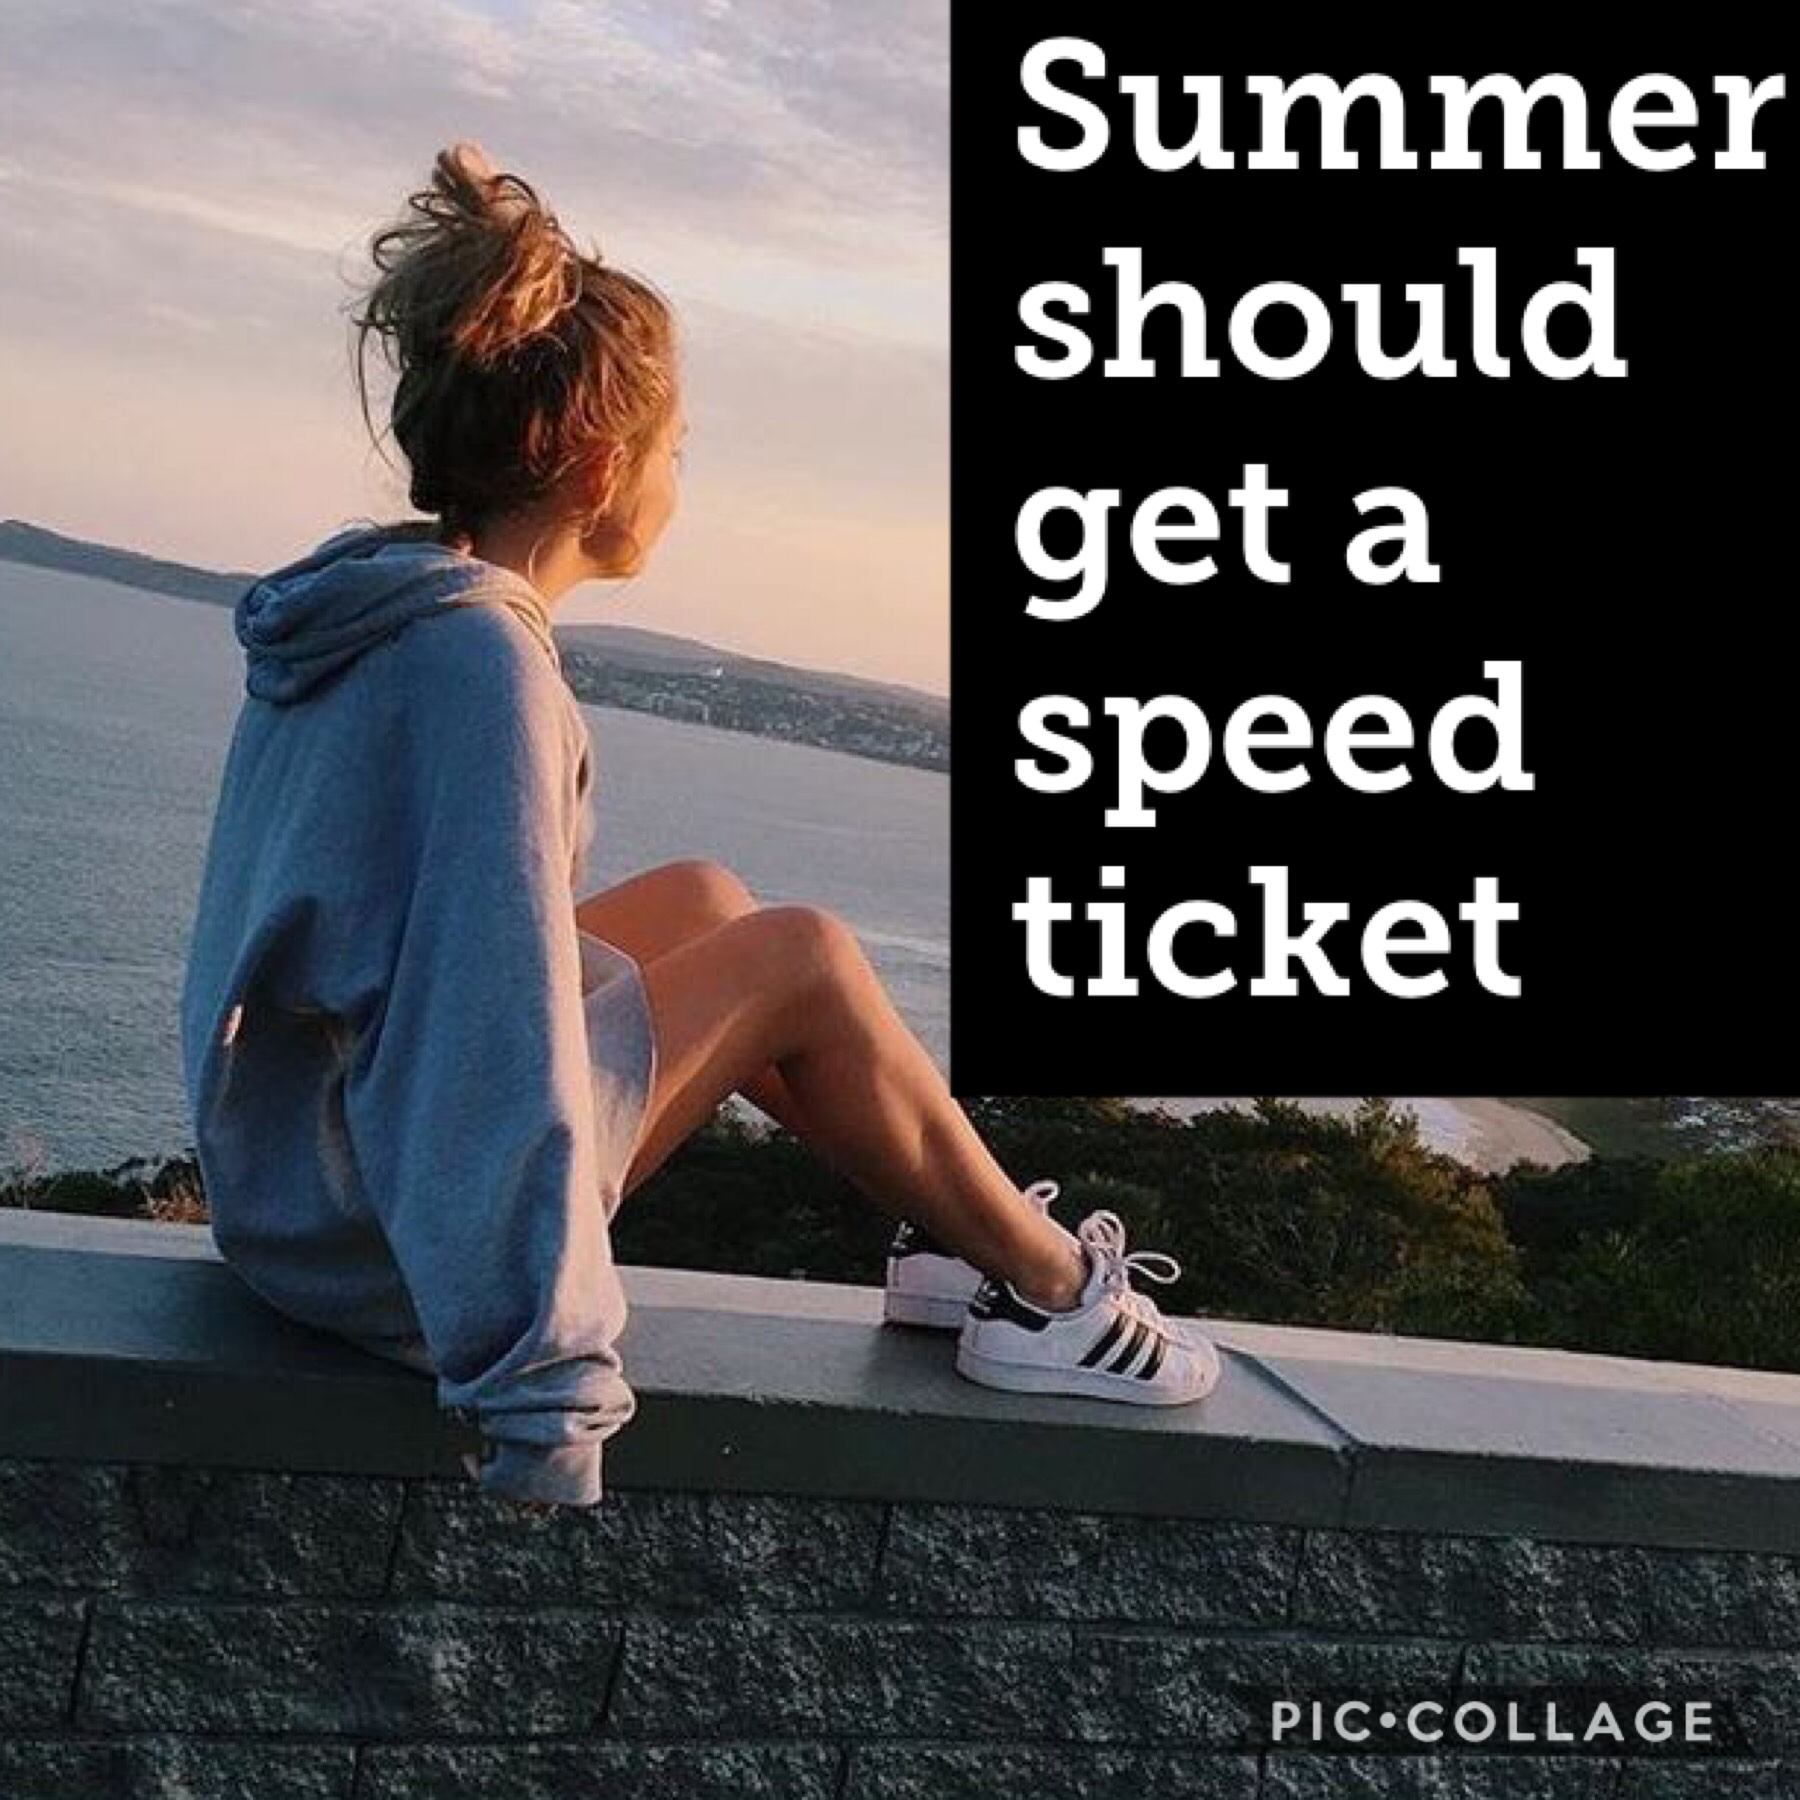 Who else thinks that summer should get a speed ticket?!!?